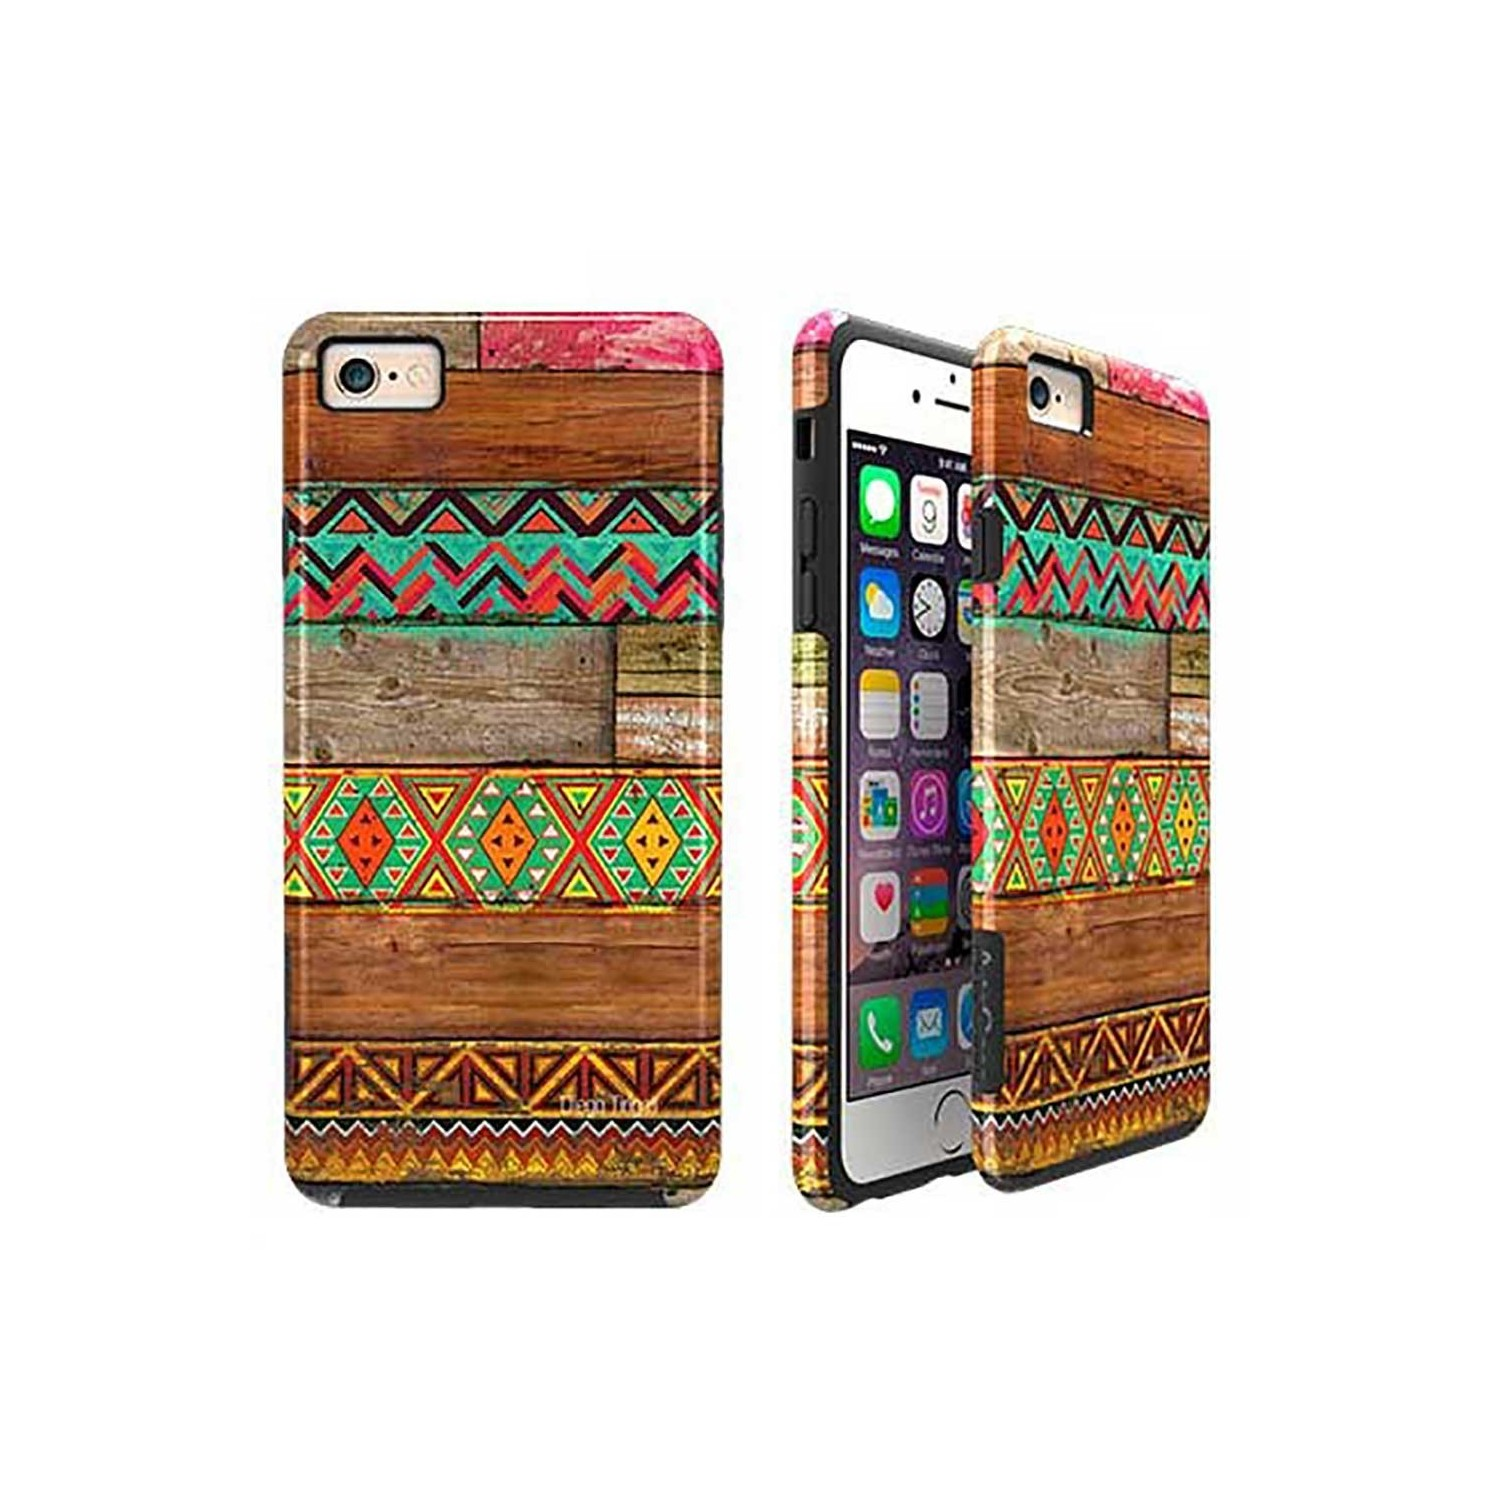 Case -  ArtsCase StrongFit for iPhone 6/6s Indian wood